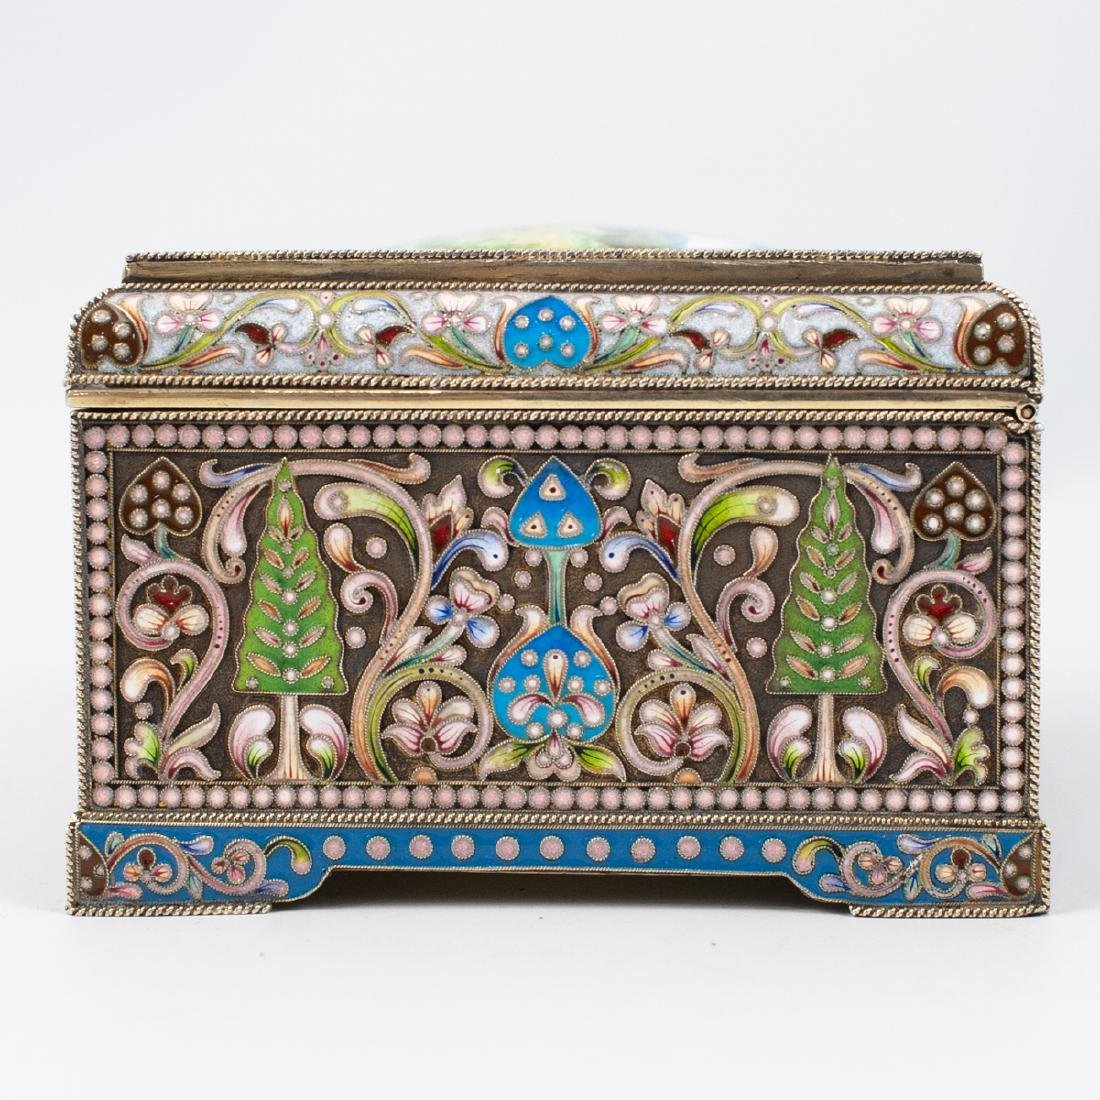 Faberge Russian Silver Enameled Box - 8